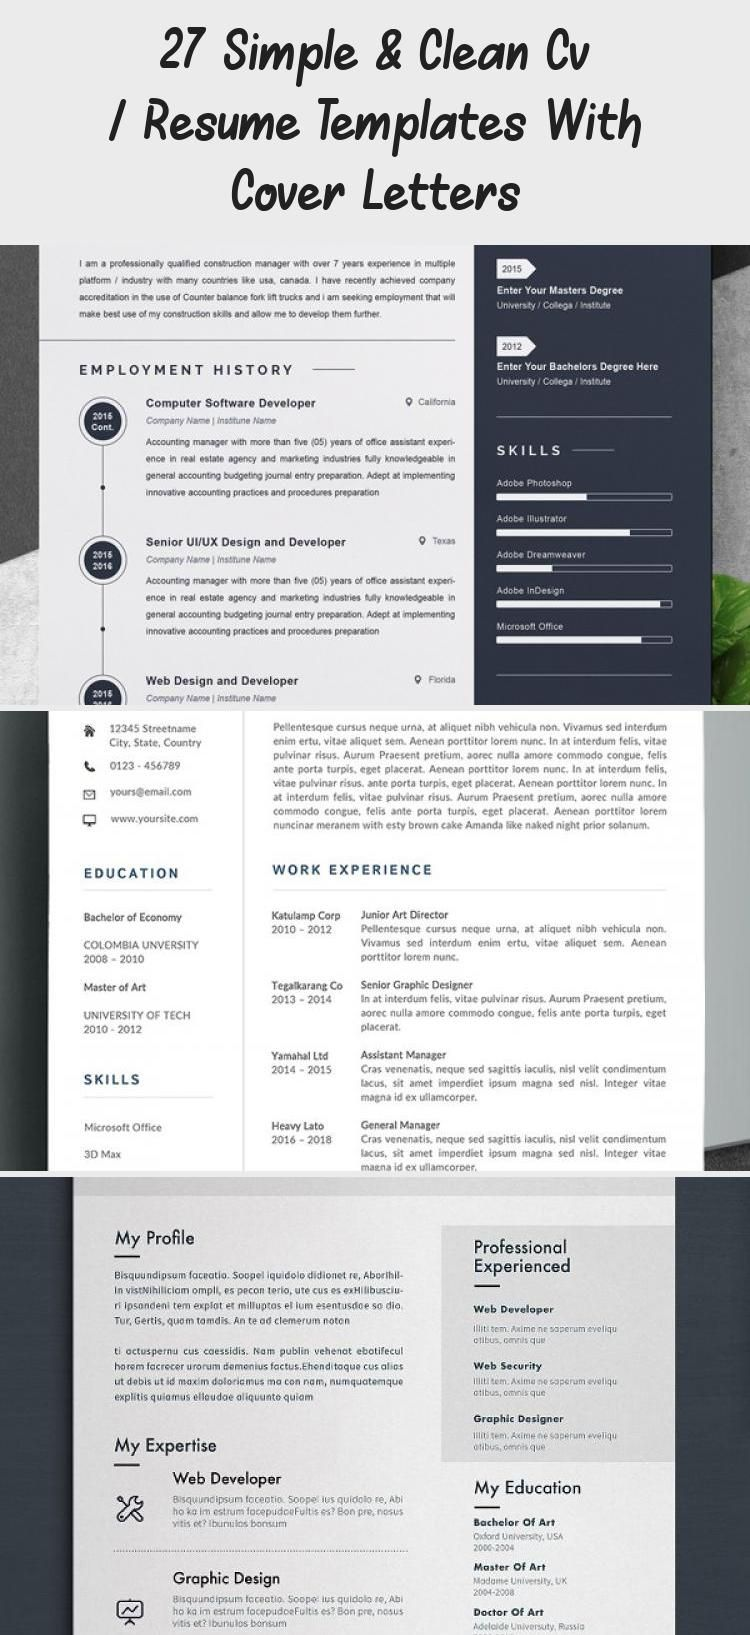 27 Simple & Clean Cv / Resume Templates With Cover Letters